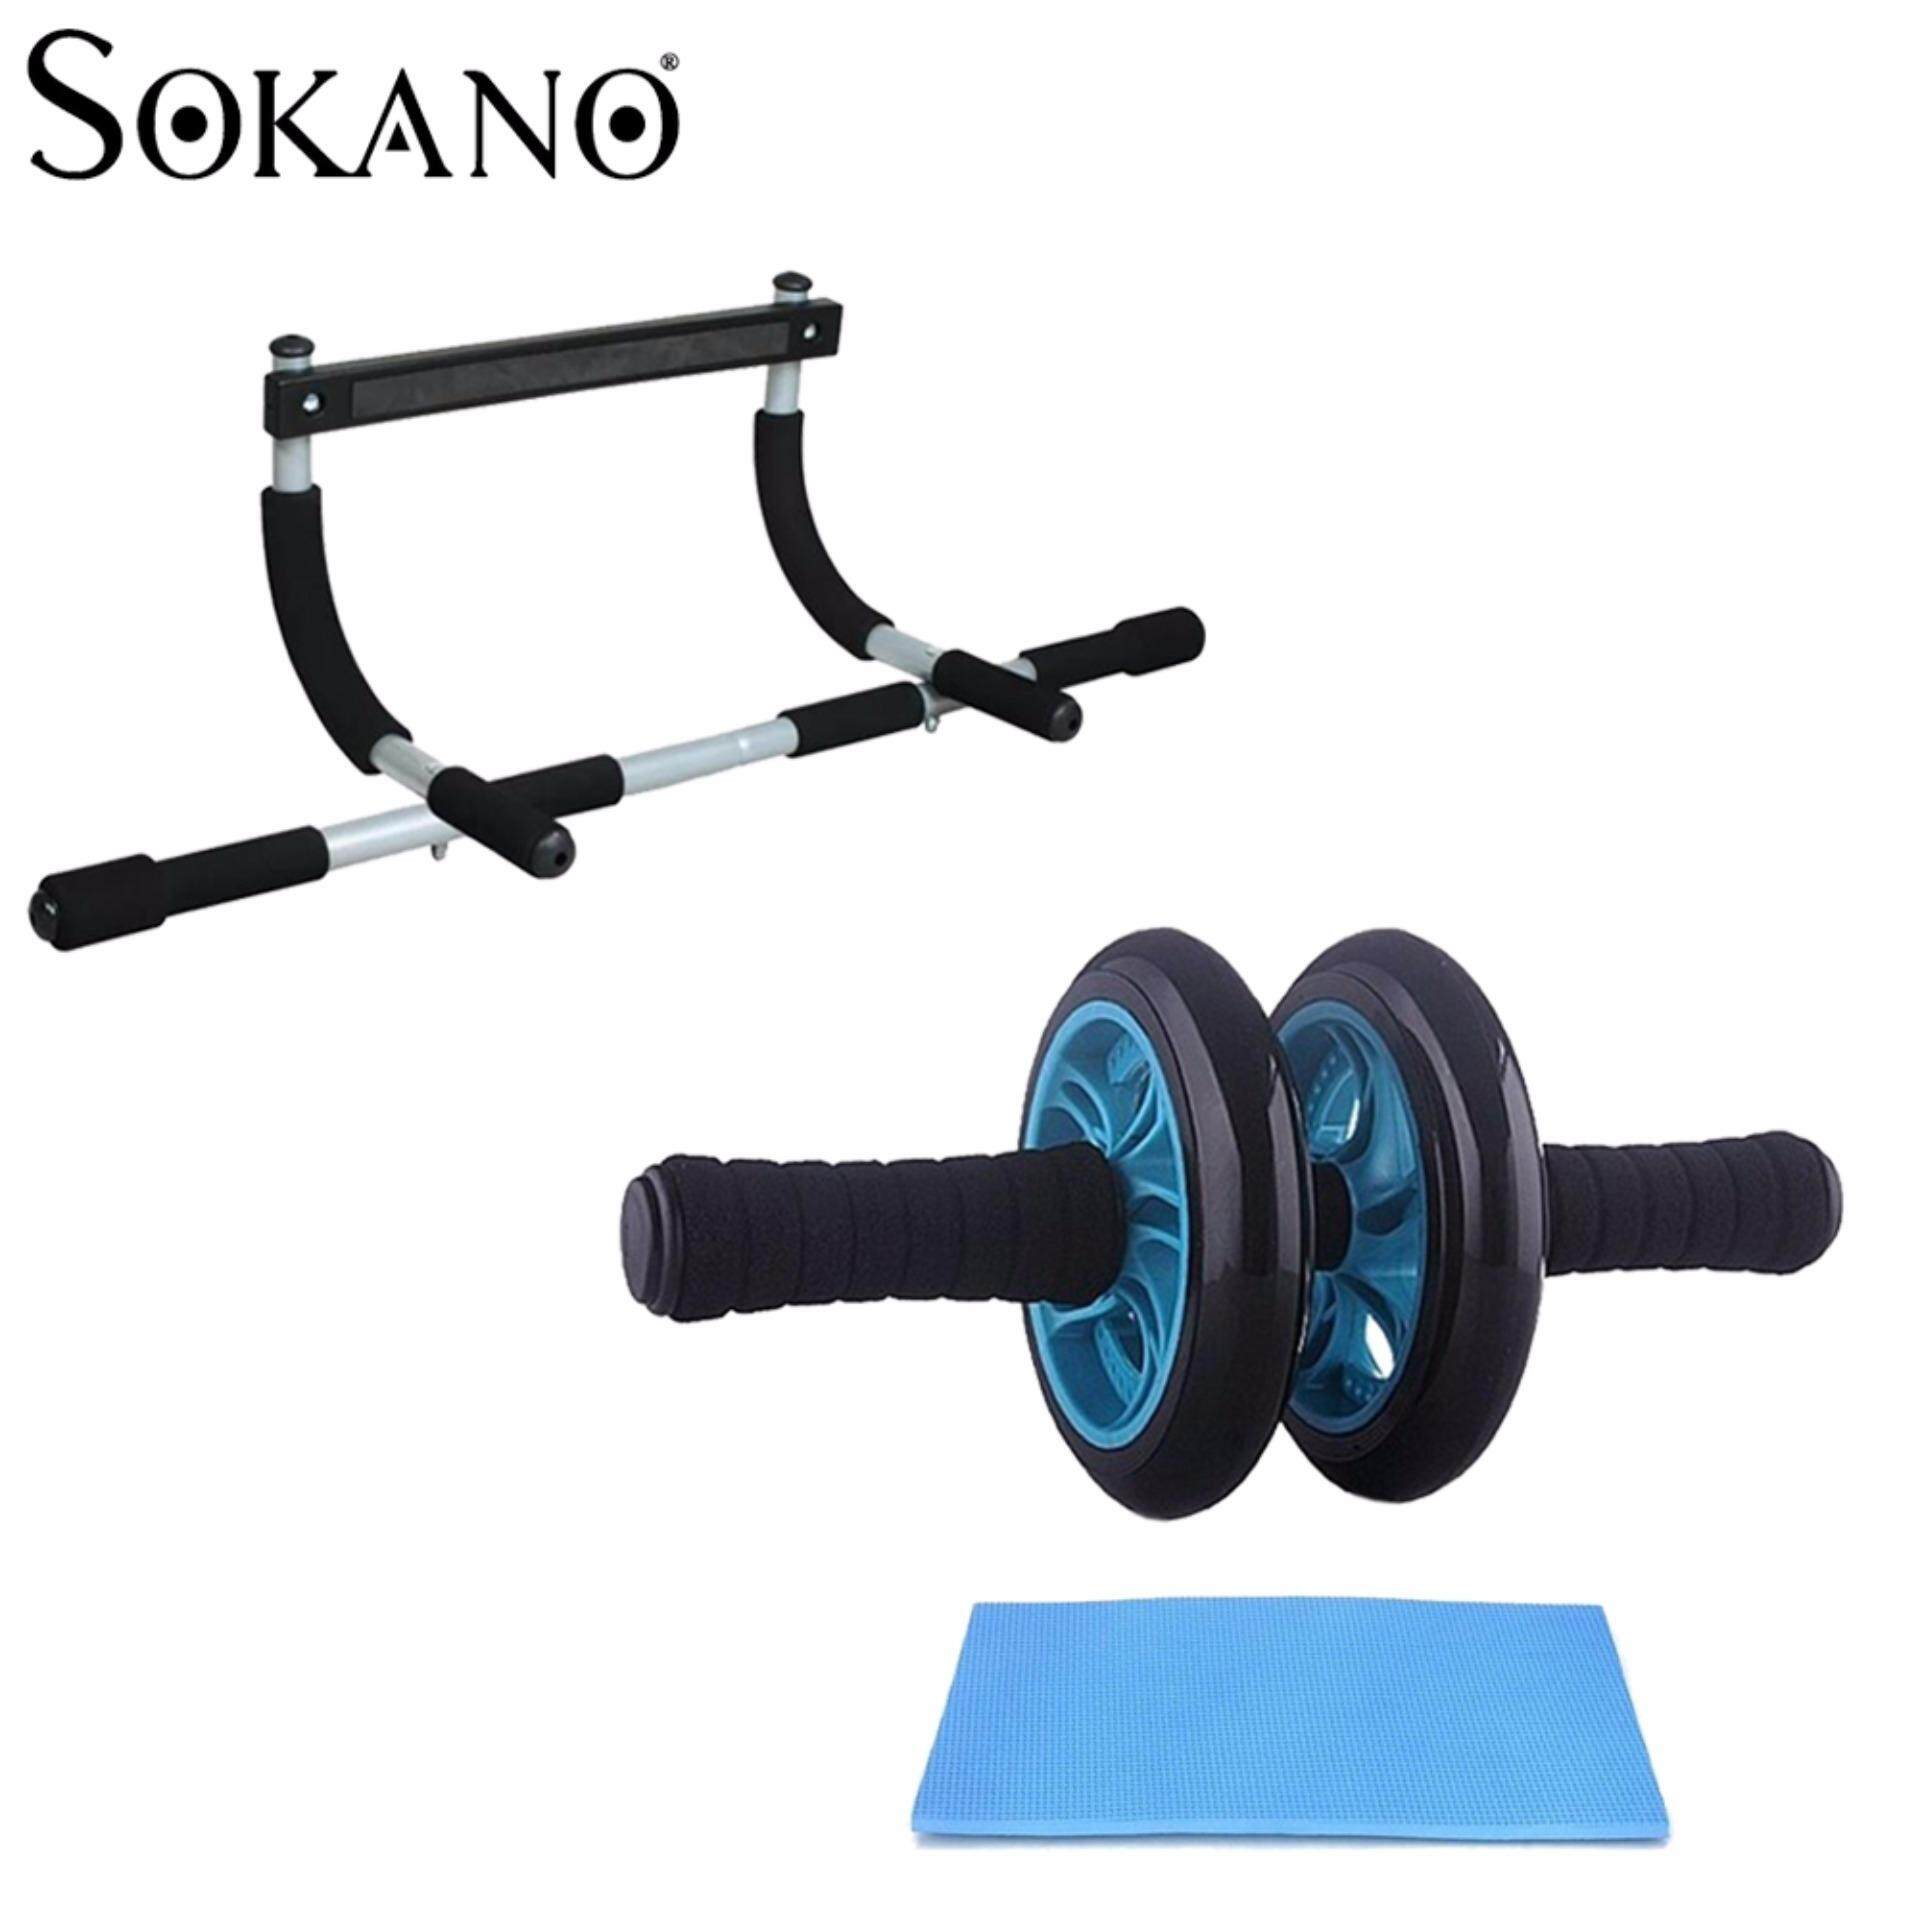 BUNDLE: SOKANO Iron Gym Door Gym Chin Up Bar Upper Body Workout Bar + New Generation Double Wheel AB Roller Free Knee Mat